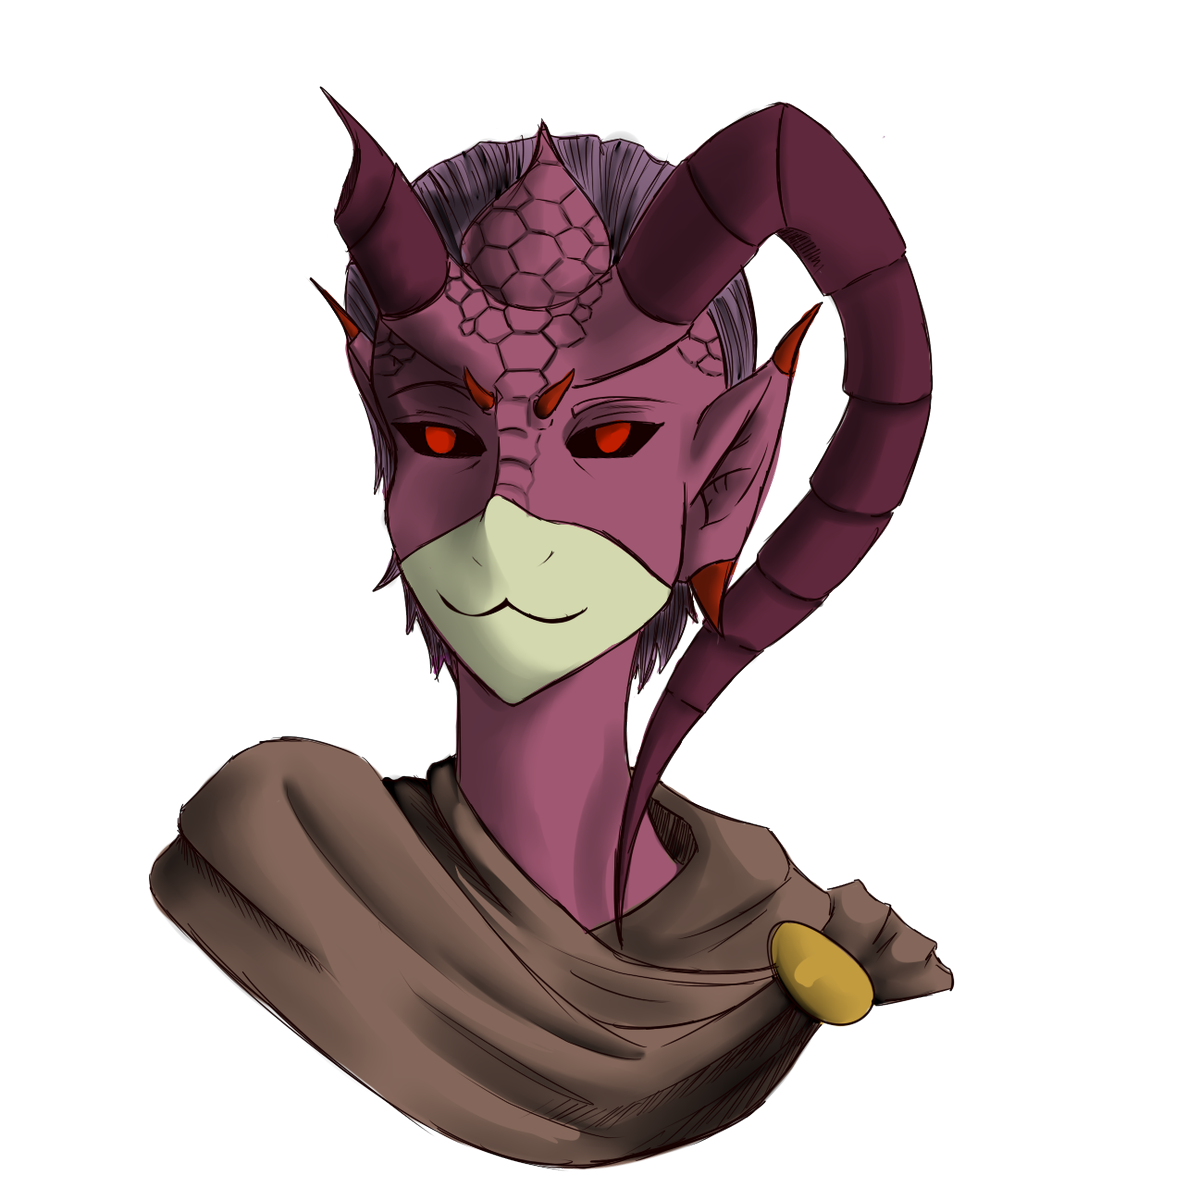 Kaylesjabberwock On Twitter Two Dnd Based Sketch Busts One Of My Orc Borba And Another Of A Tiefling Rouge Maybe Dont Know They Are Just Precious Https T Co Lmh3sbvdlj